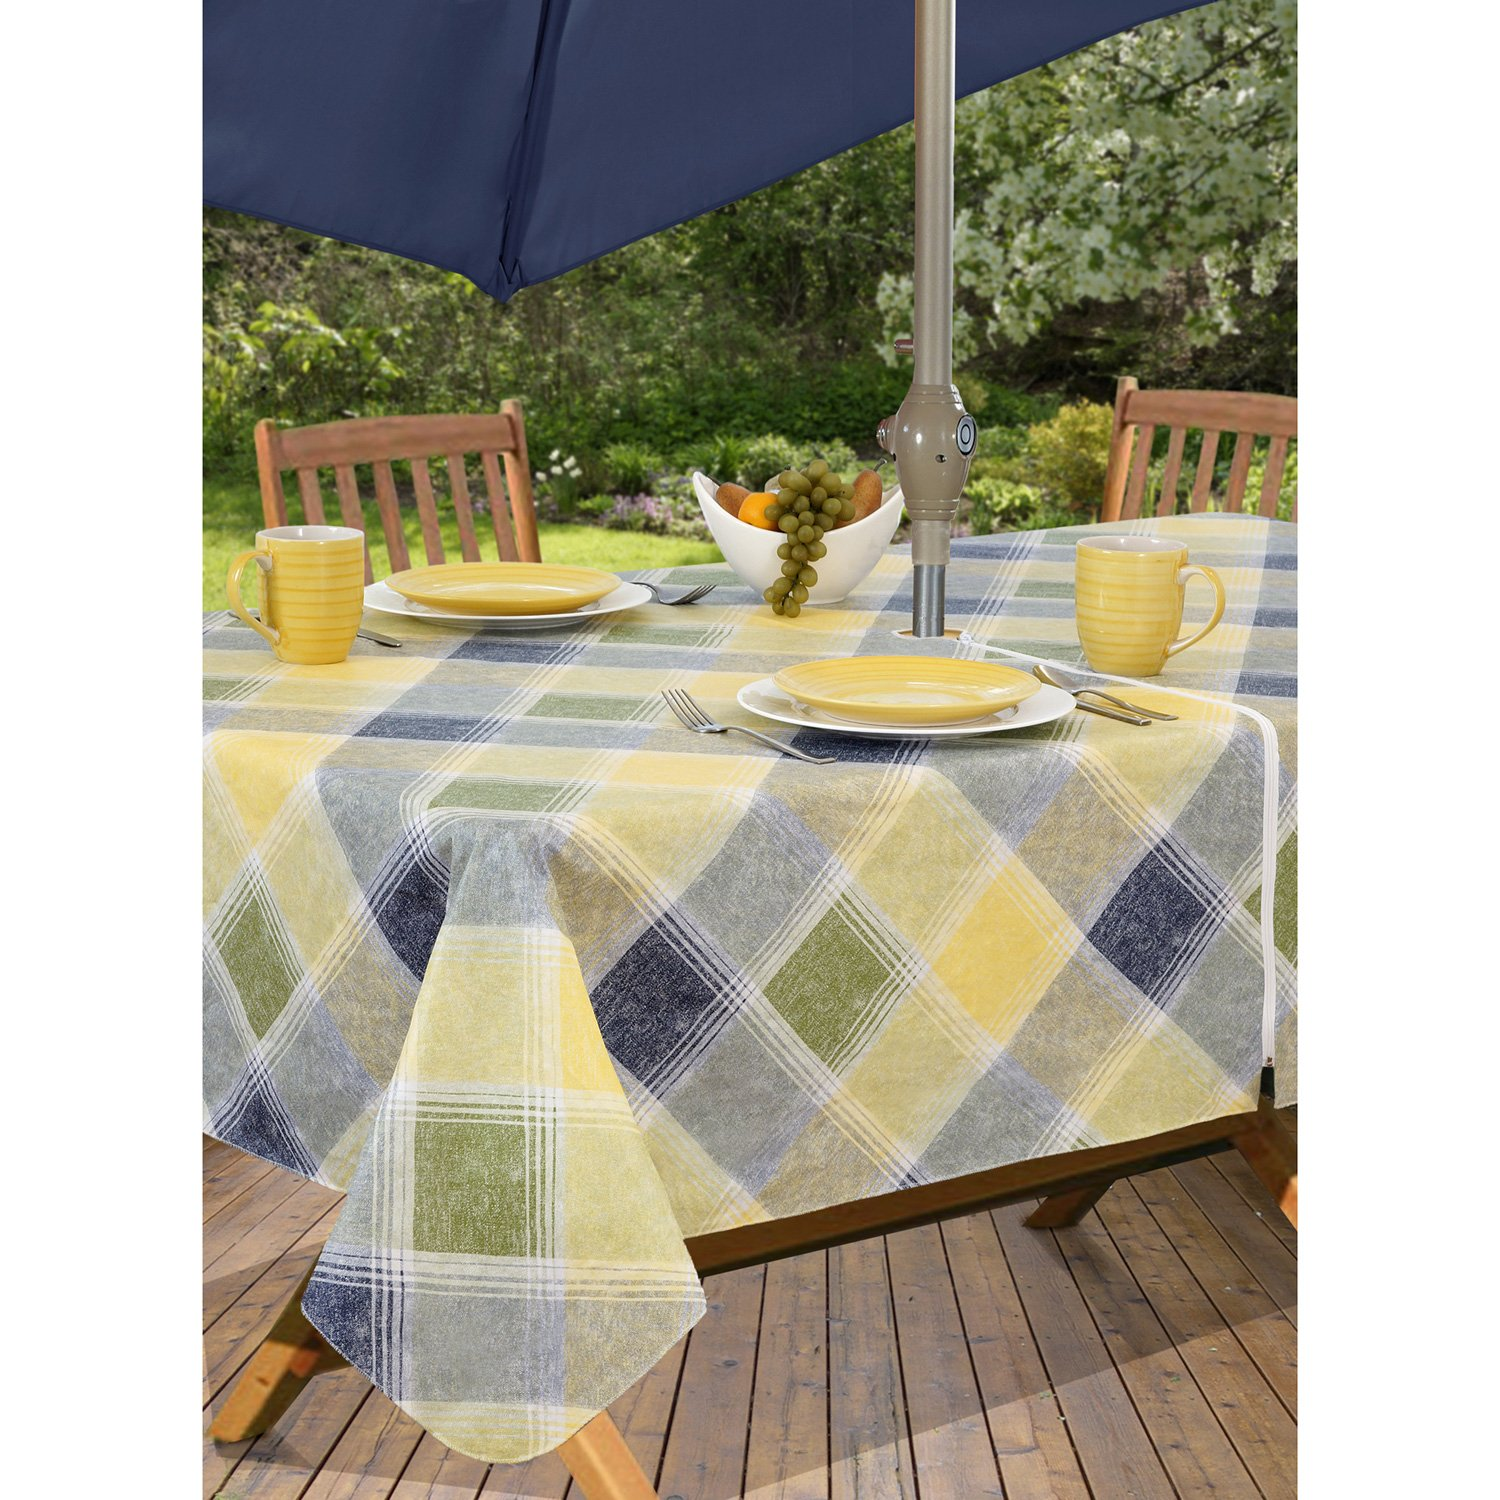 Harmony Plaid Flannel Backed Indoor Outdoor Vinyl Table Linens, 60 Inch By  84